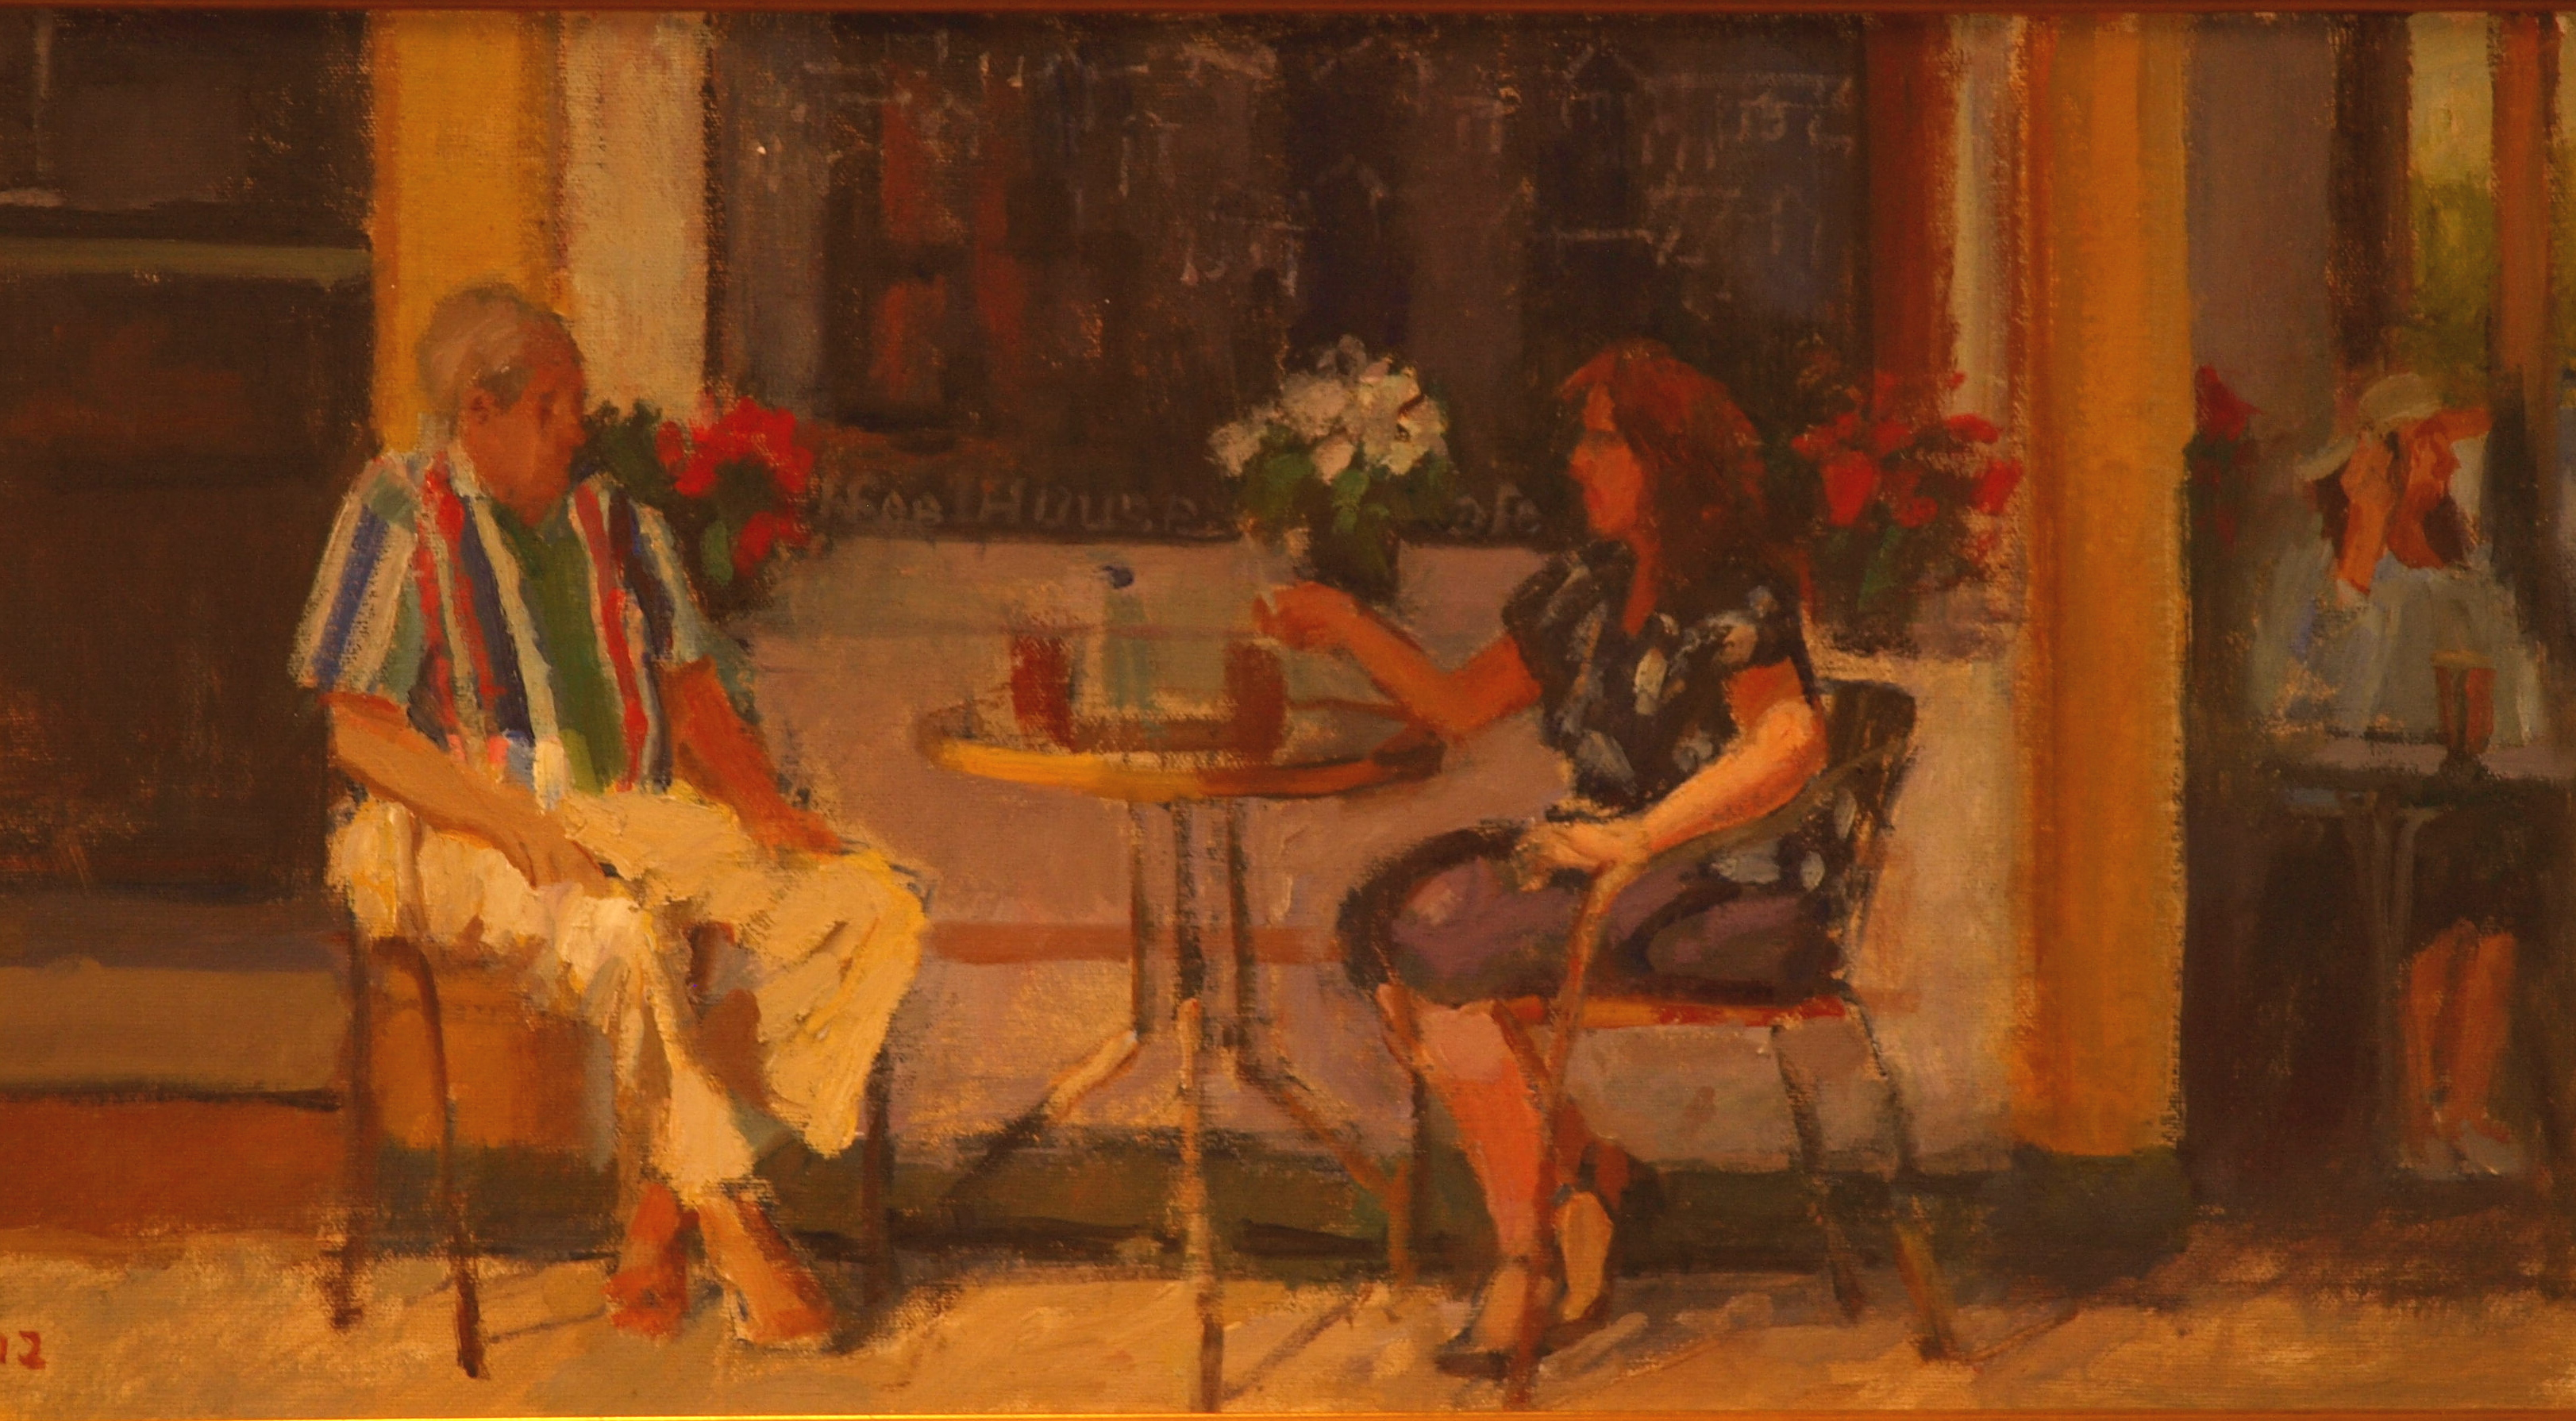 Summer Vacation, Oil on Canvas on Panel, 12 x 22 Inches, by Susan Grisell, $450